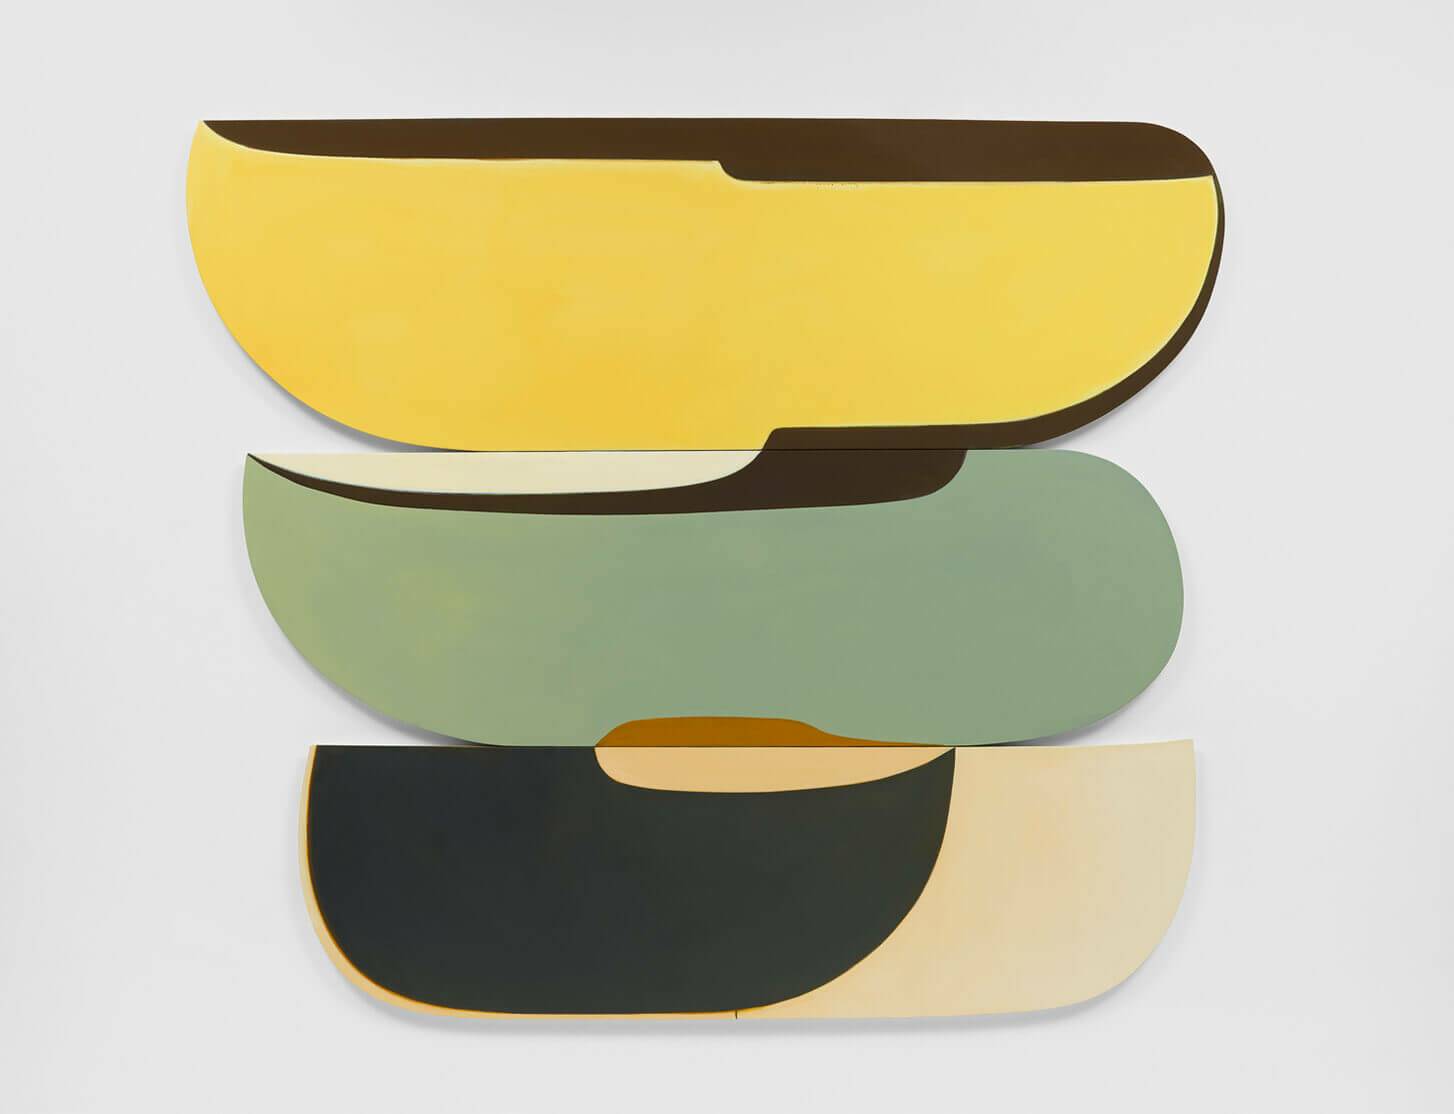 Announcing representation of Joanna Pousette-Dart